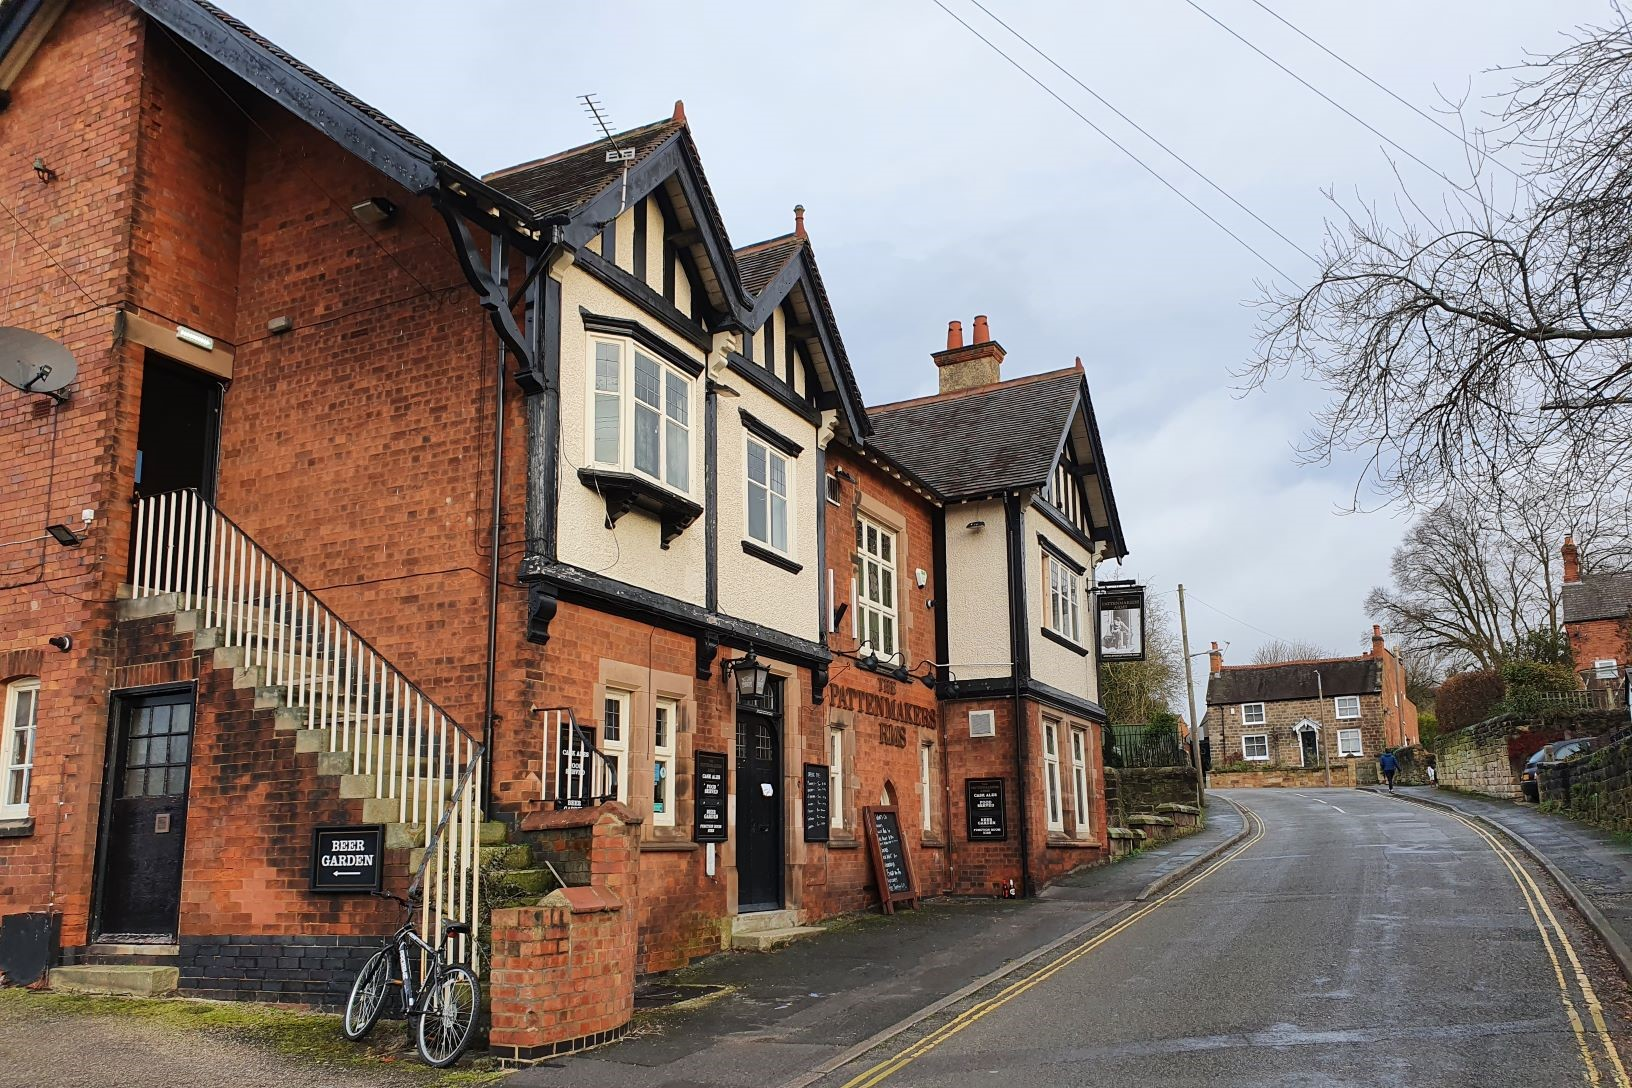 PLANNING CONSENT GRANTED TO TURN FORMER COMMUNITY PUB IN DUFFIELD INTO A NEW PUB/RESTAURANT